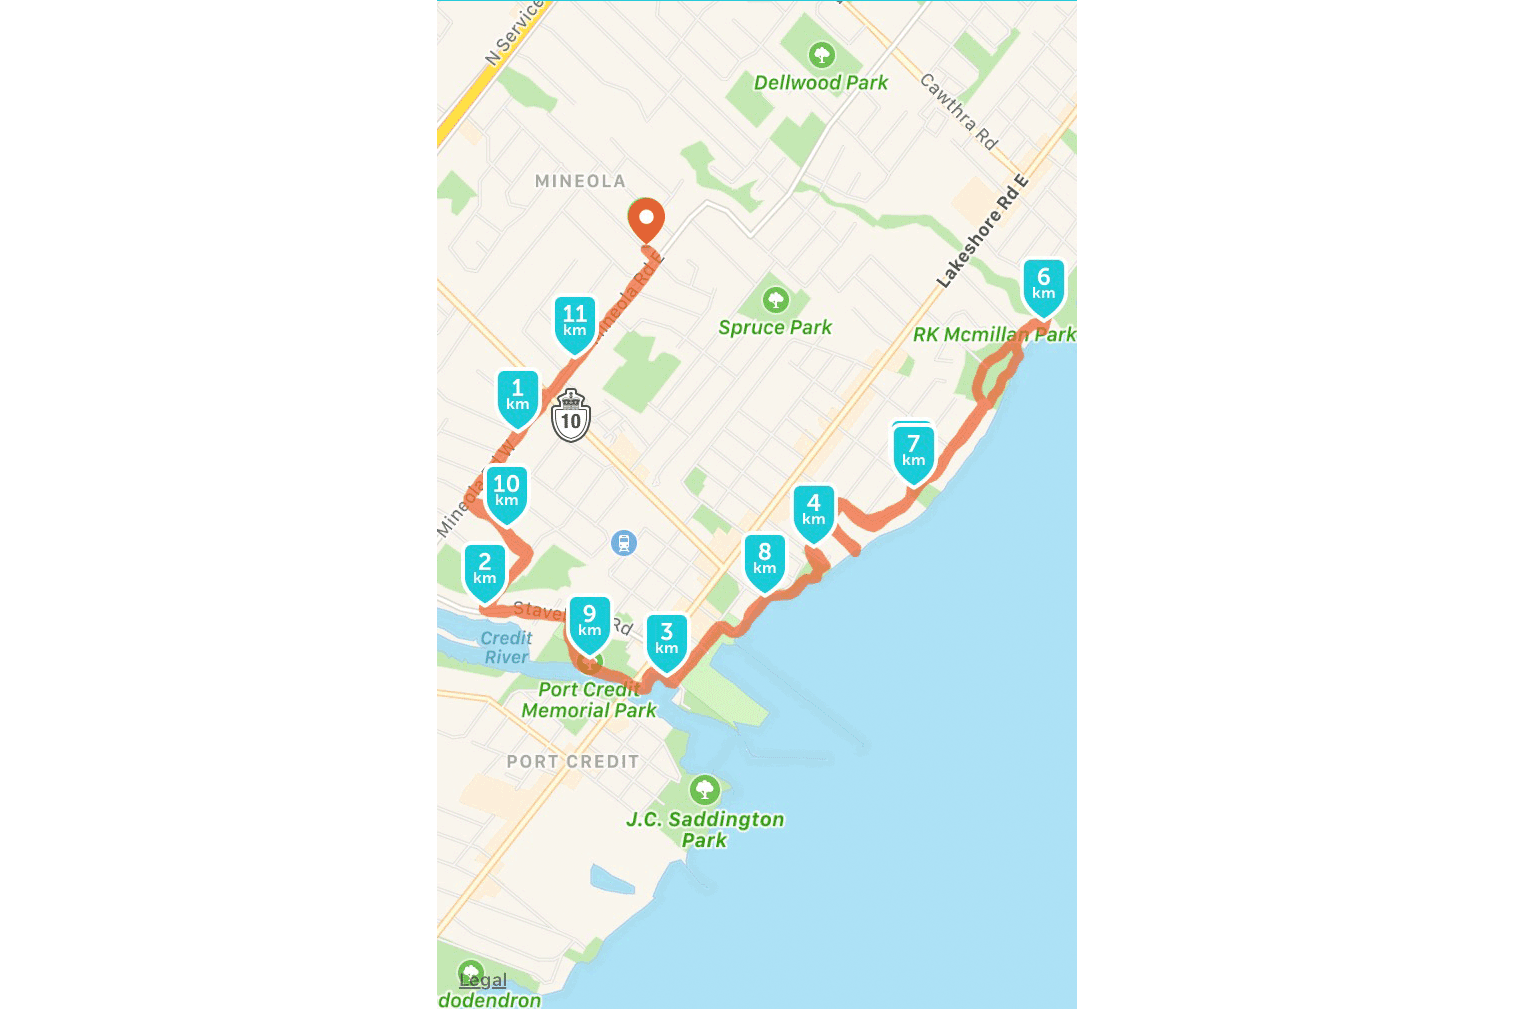 This is a little longer than my first actual Port Credit run, done later in the summer when I'd learned how to use running apps.